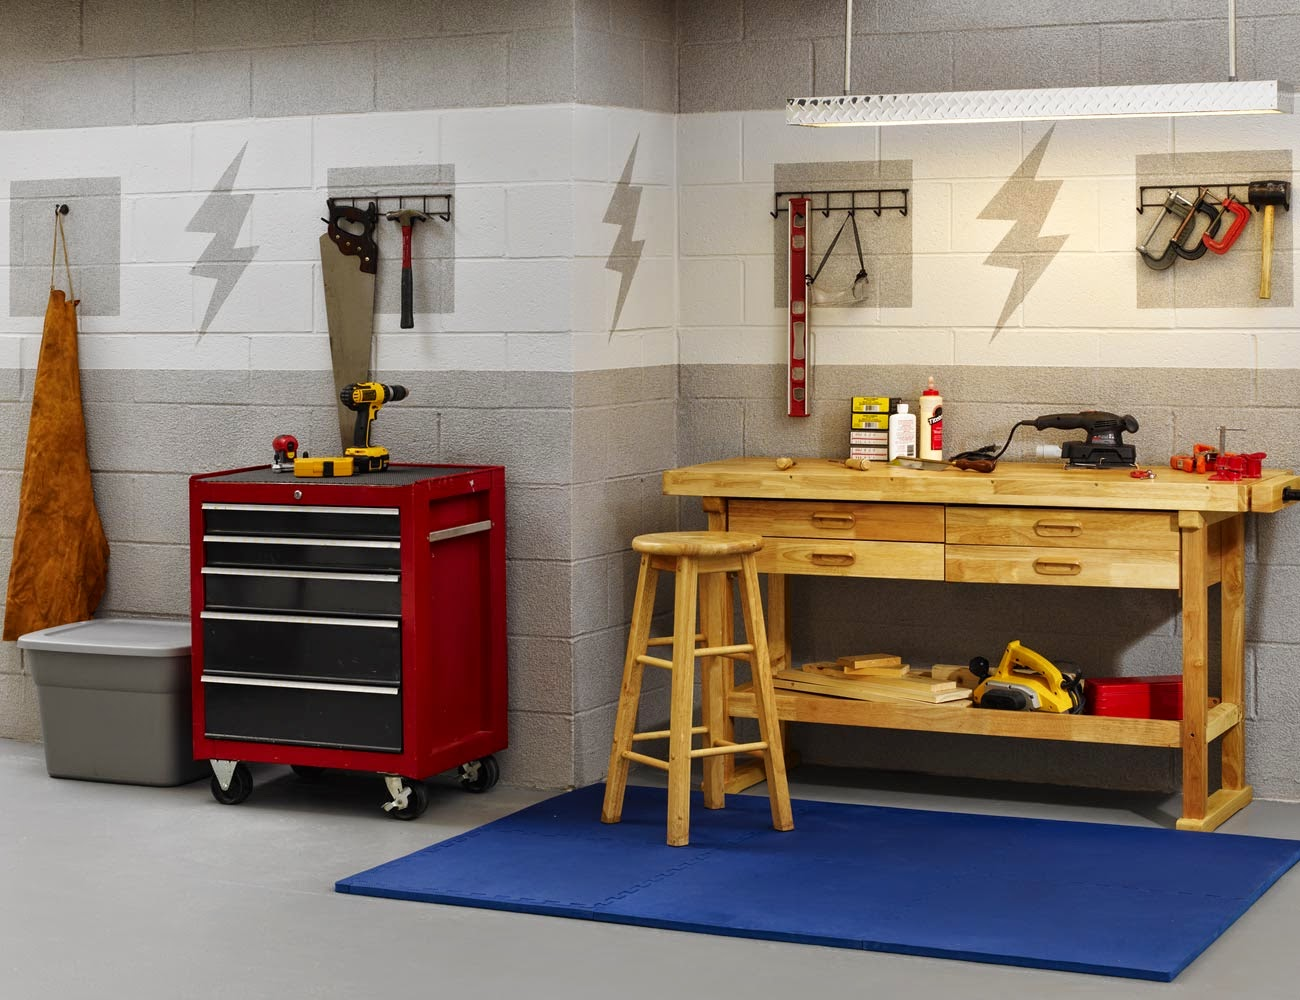 7 great design ideas for basement instant knowledge for Small basement workshop ideas